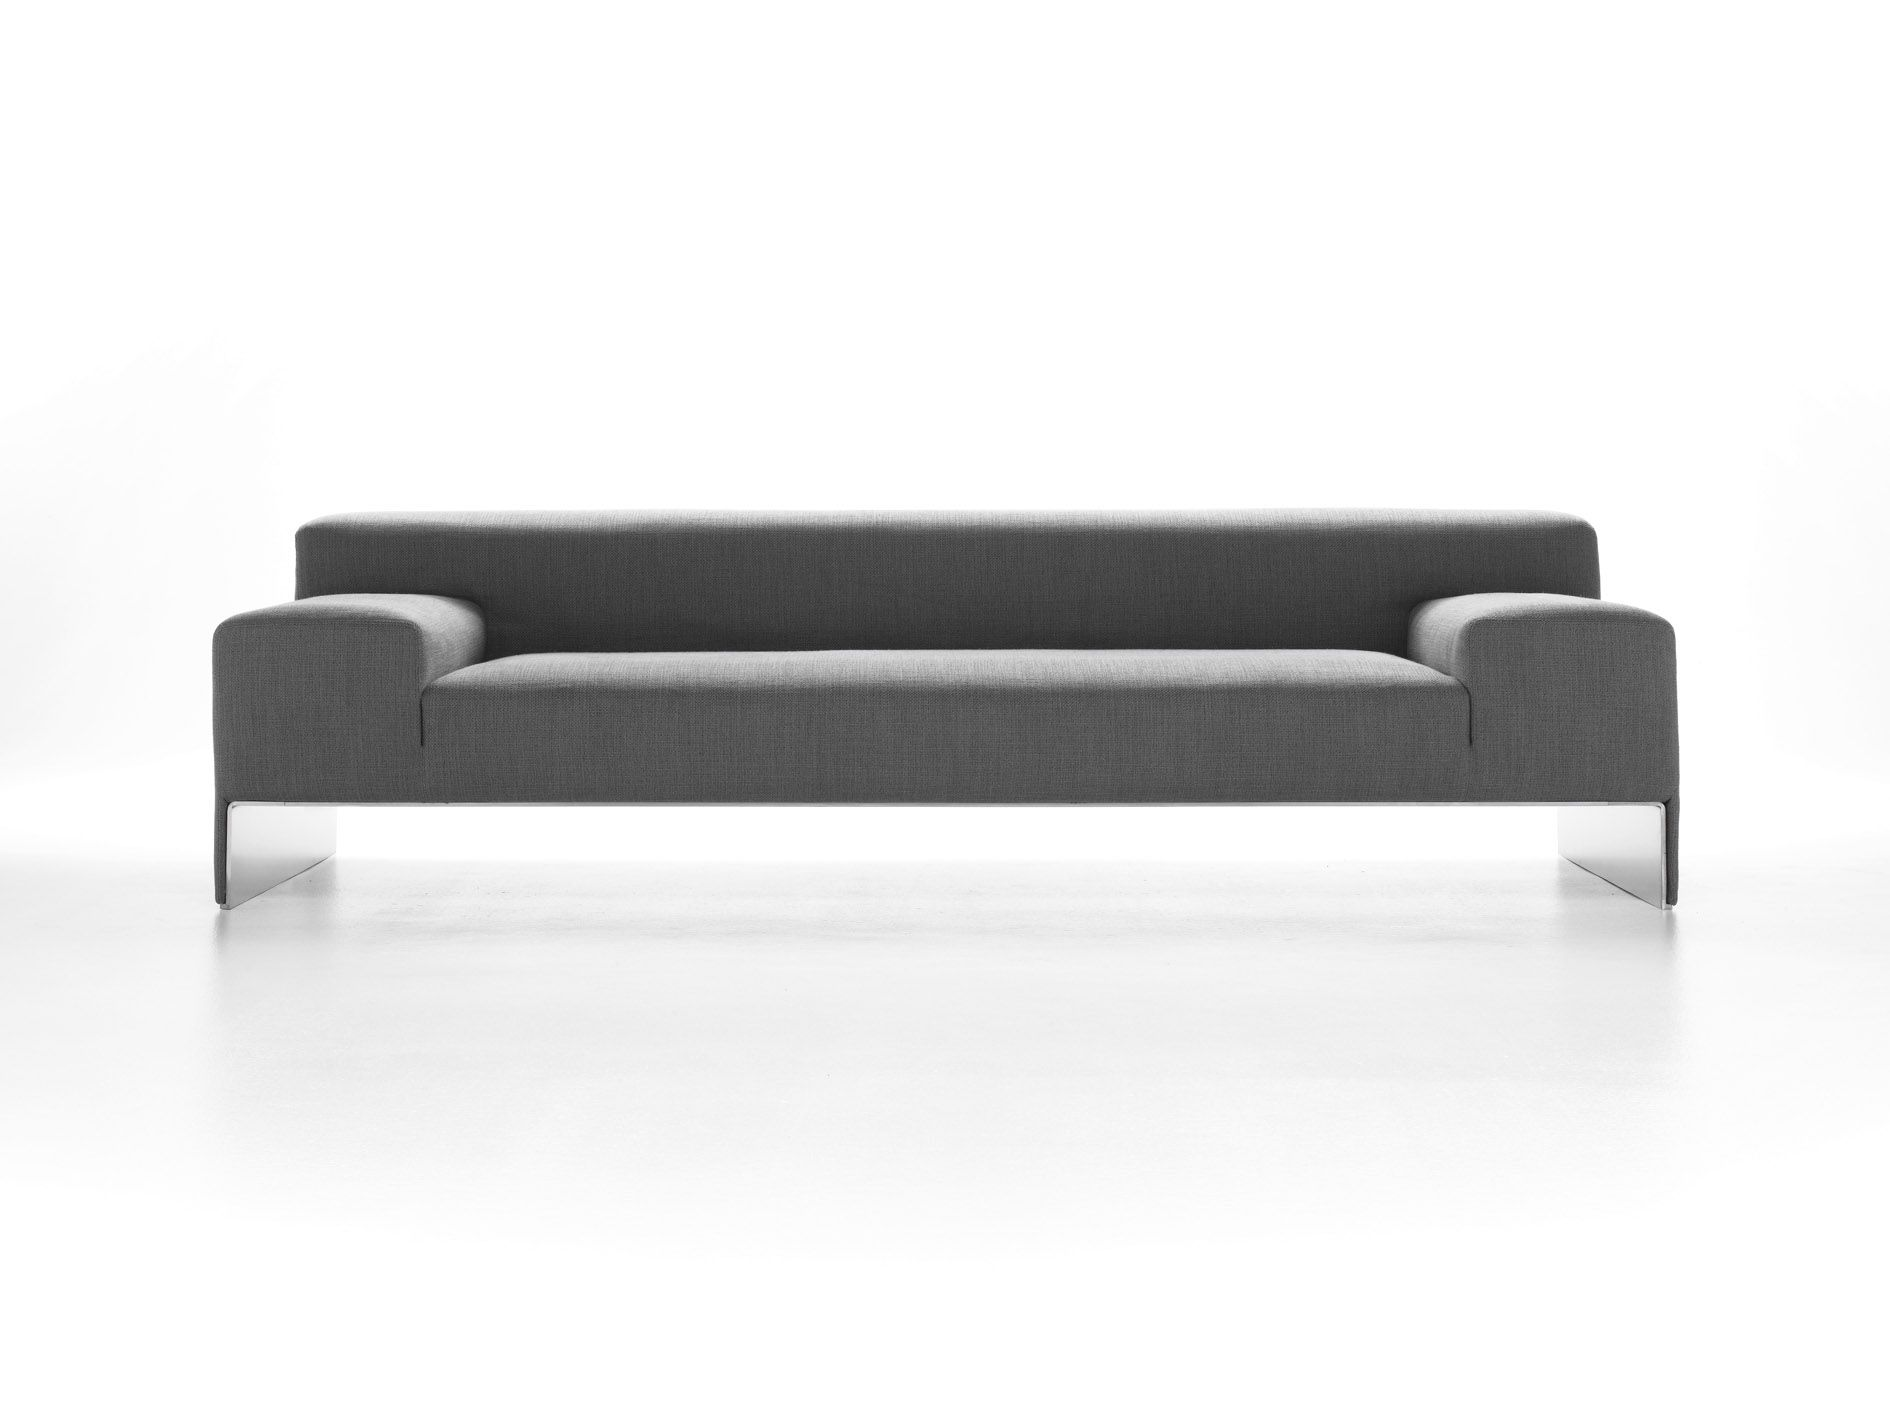 Minimalist Black Long Sofa With Wooden Legs And Soft Modern Skin For Best  Minimalist Furnitures Design Ideas / Furniture Comfortable Modern .